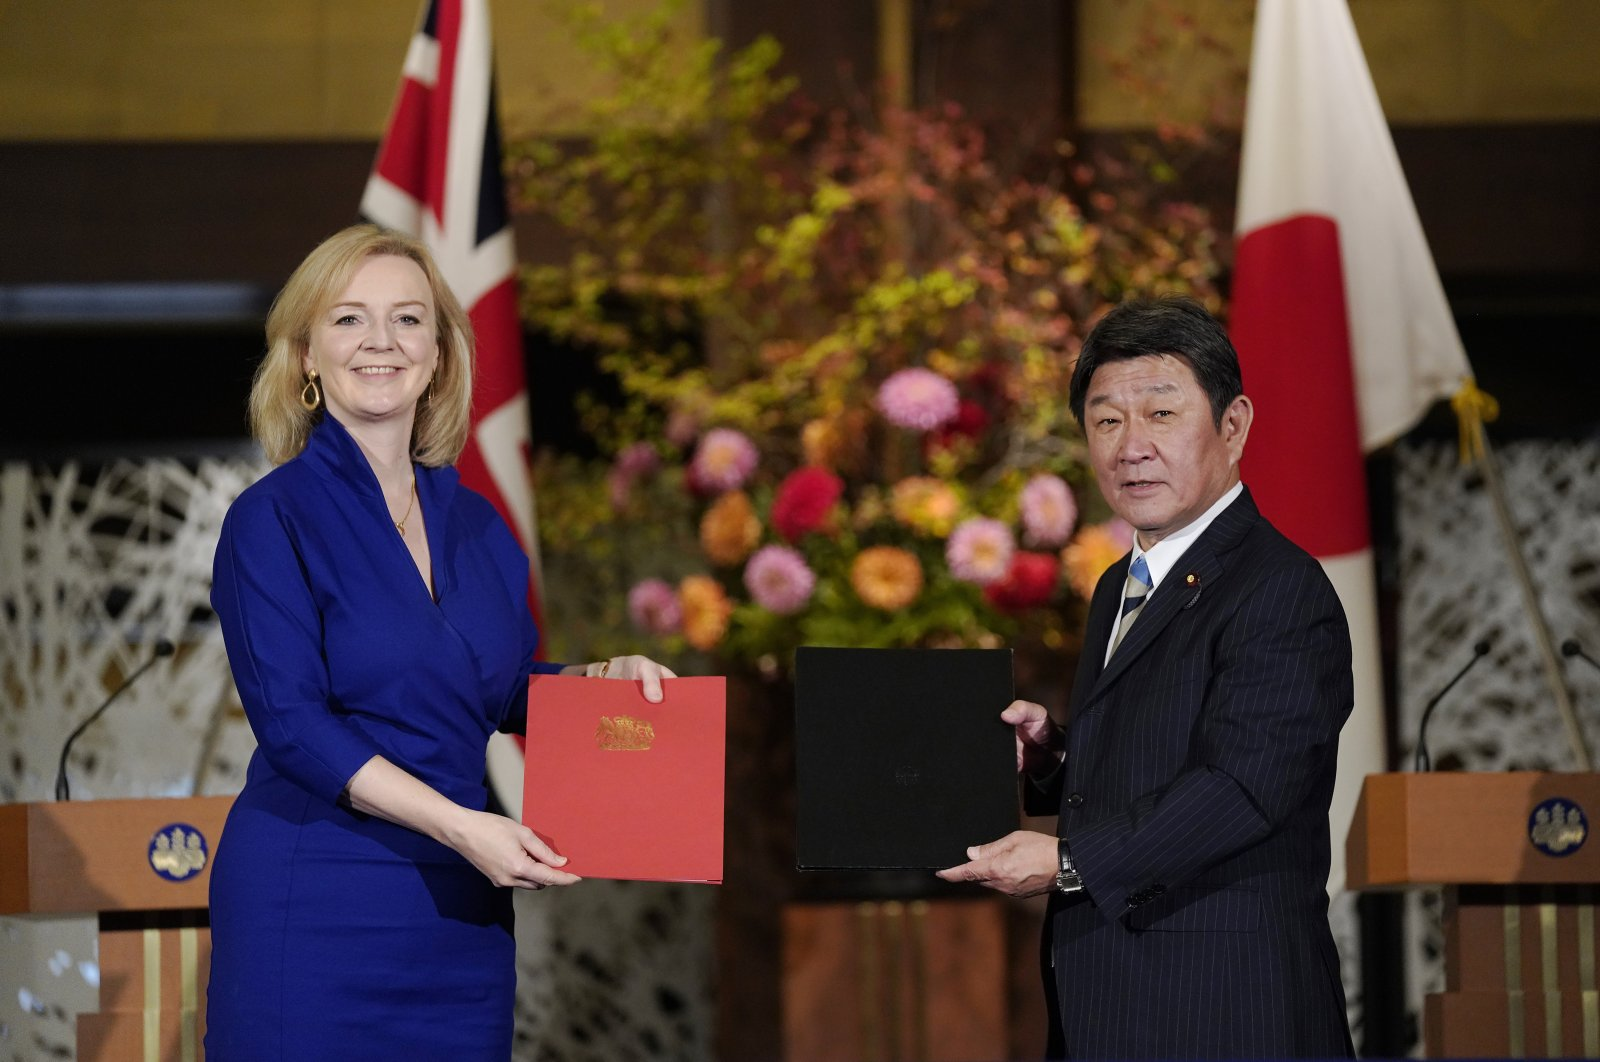 British International Trade SecretaryLiz Truss, left, and Japanese Foreign Minister Toshimitsu Motegi exchange agreement documents for economic partnership between Japan and Britain at Iikura Annex of the Foreign Ministry in Tokyo, Friday, Oct. 23, 2020. (Pool Photo via AP)